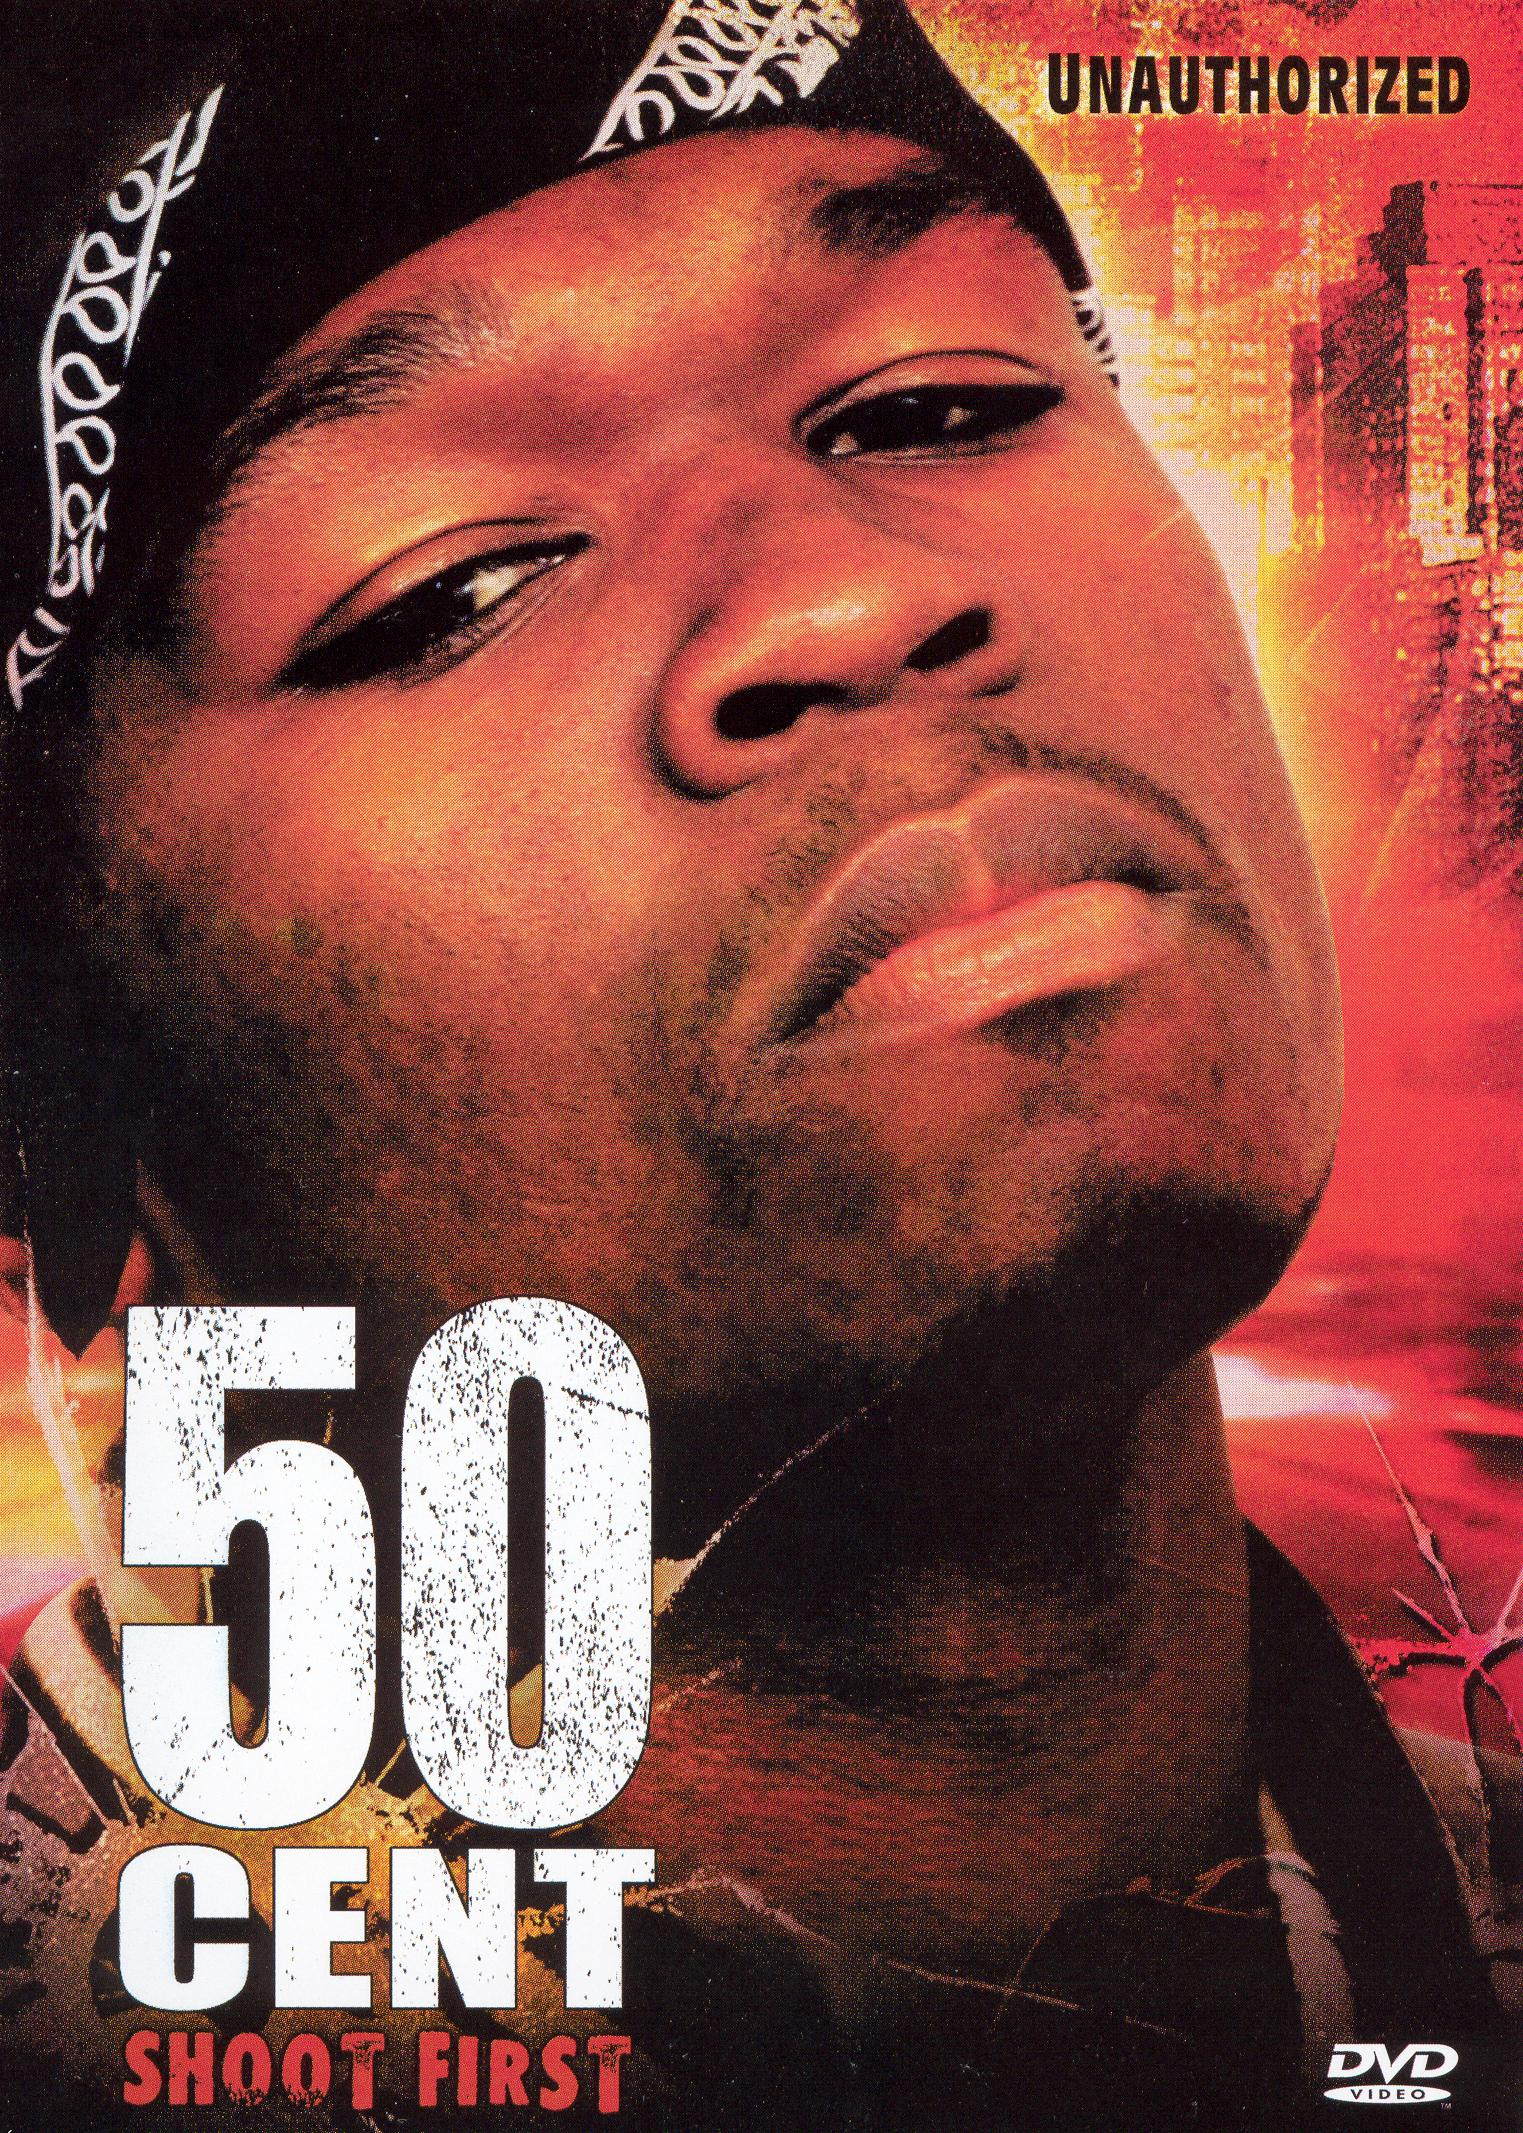 50 Cent: Unauthorized - Shoot First